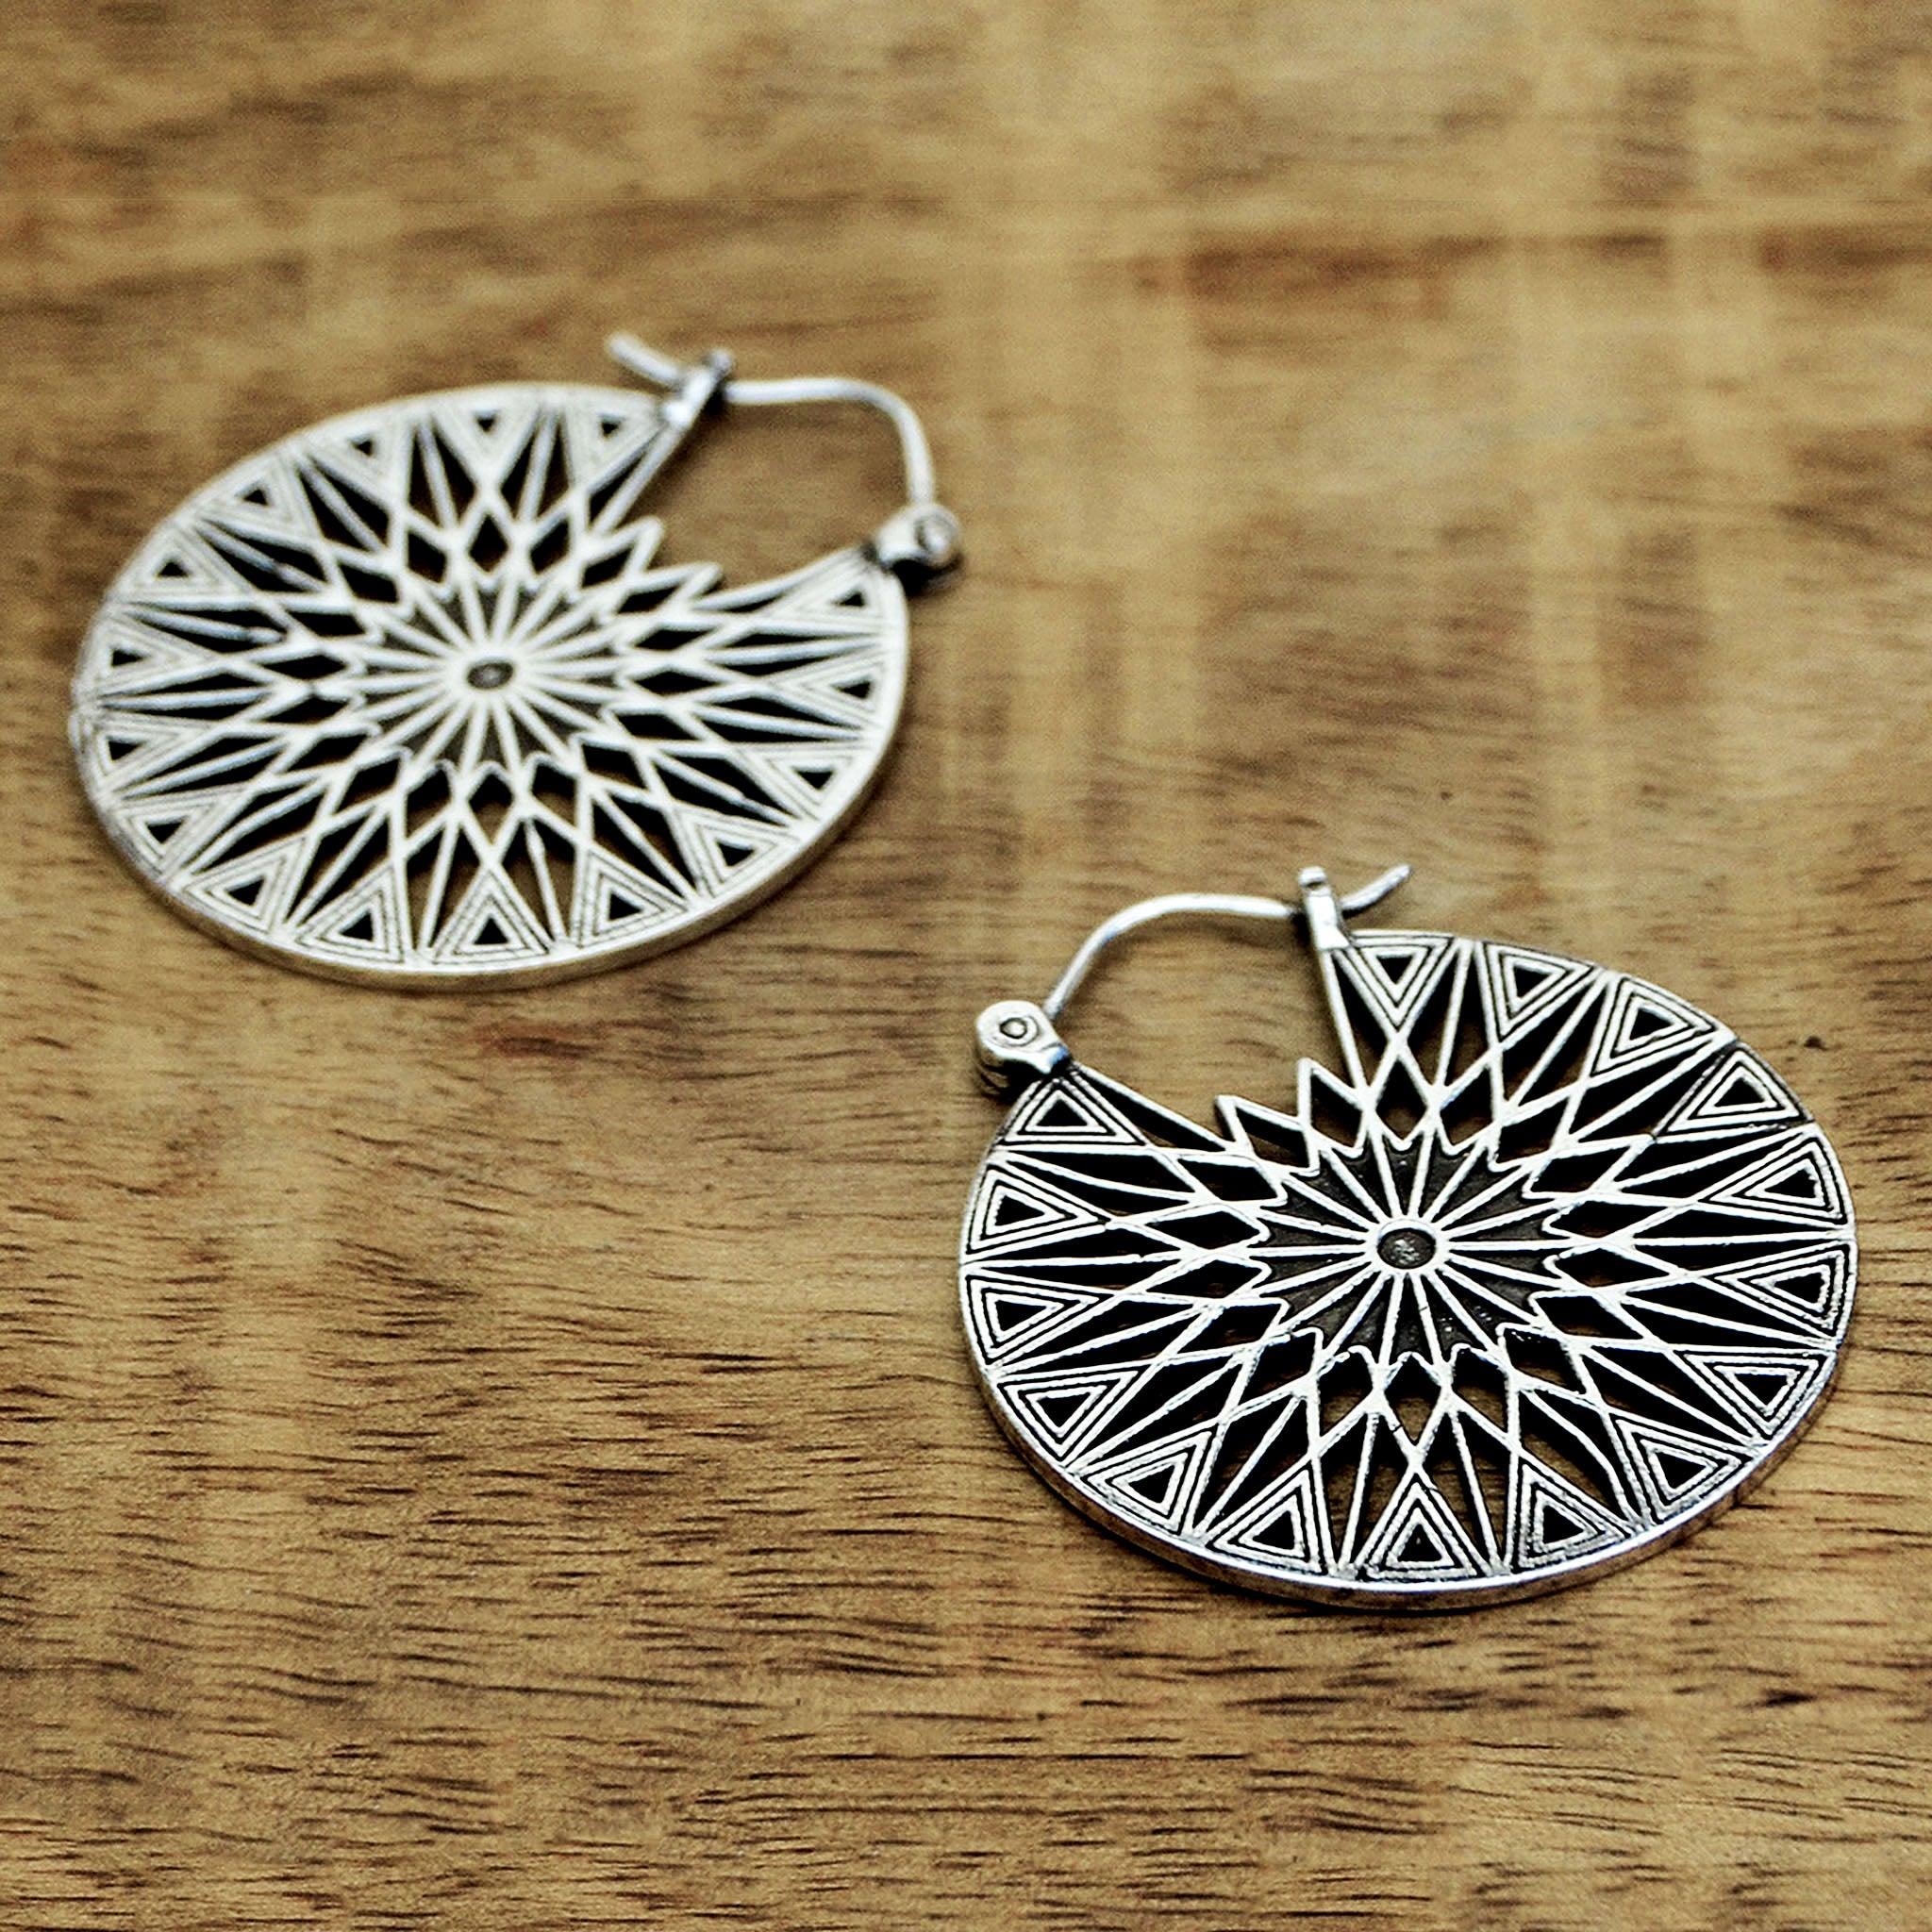 Antique mexico earrings